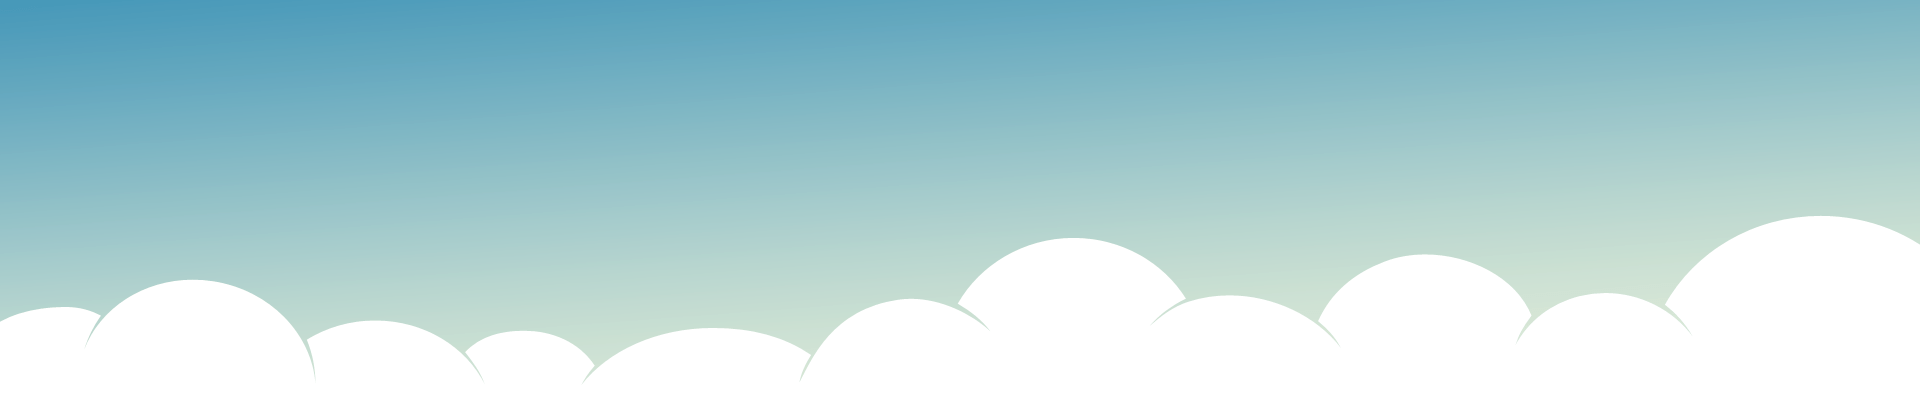 frontpage-illustration_noShadow_clouds2